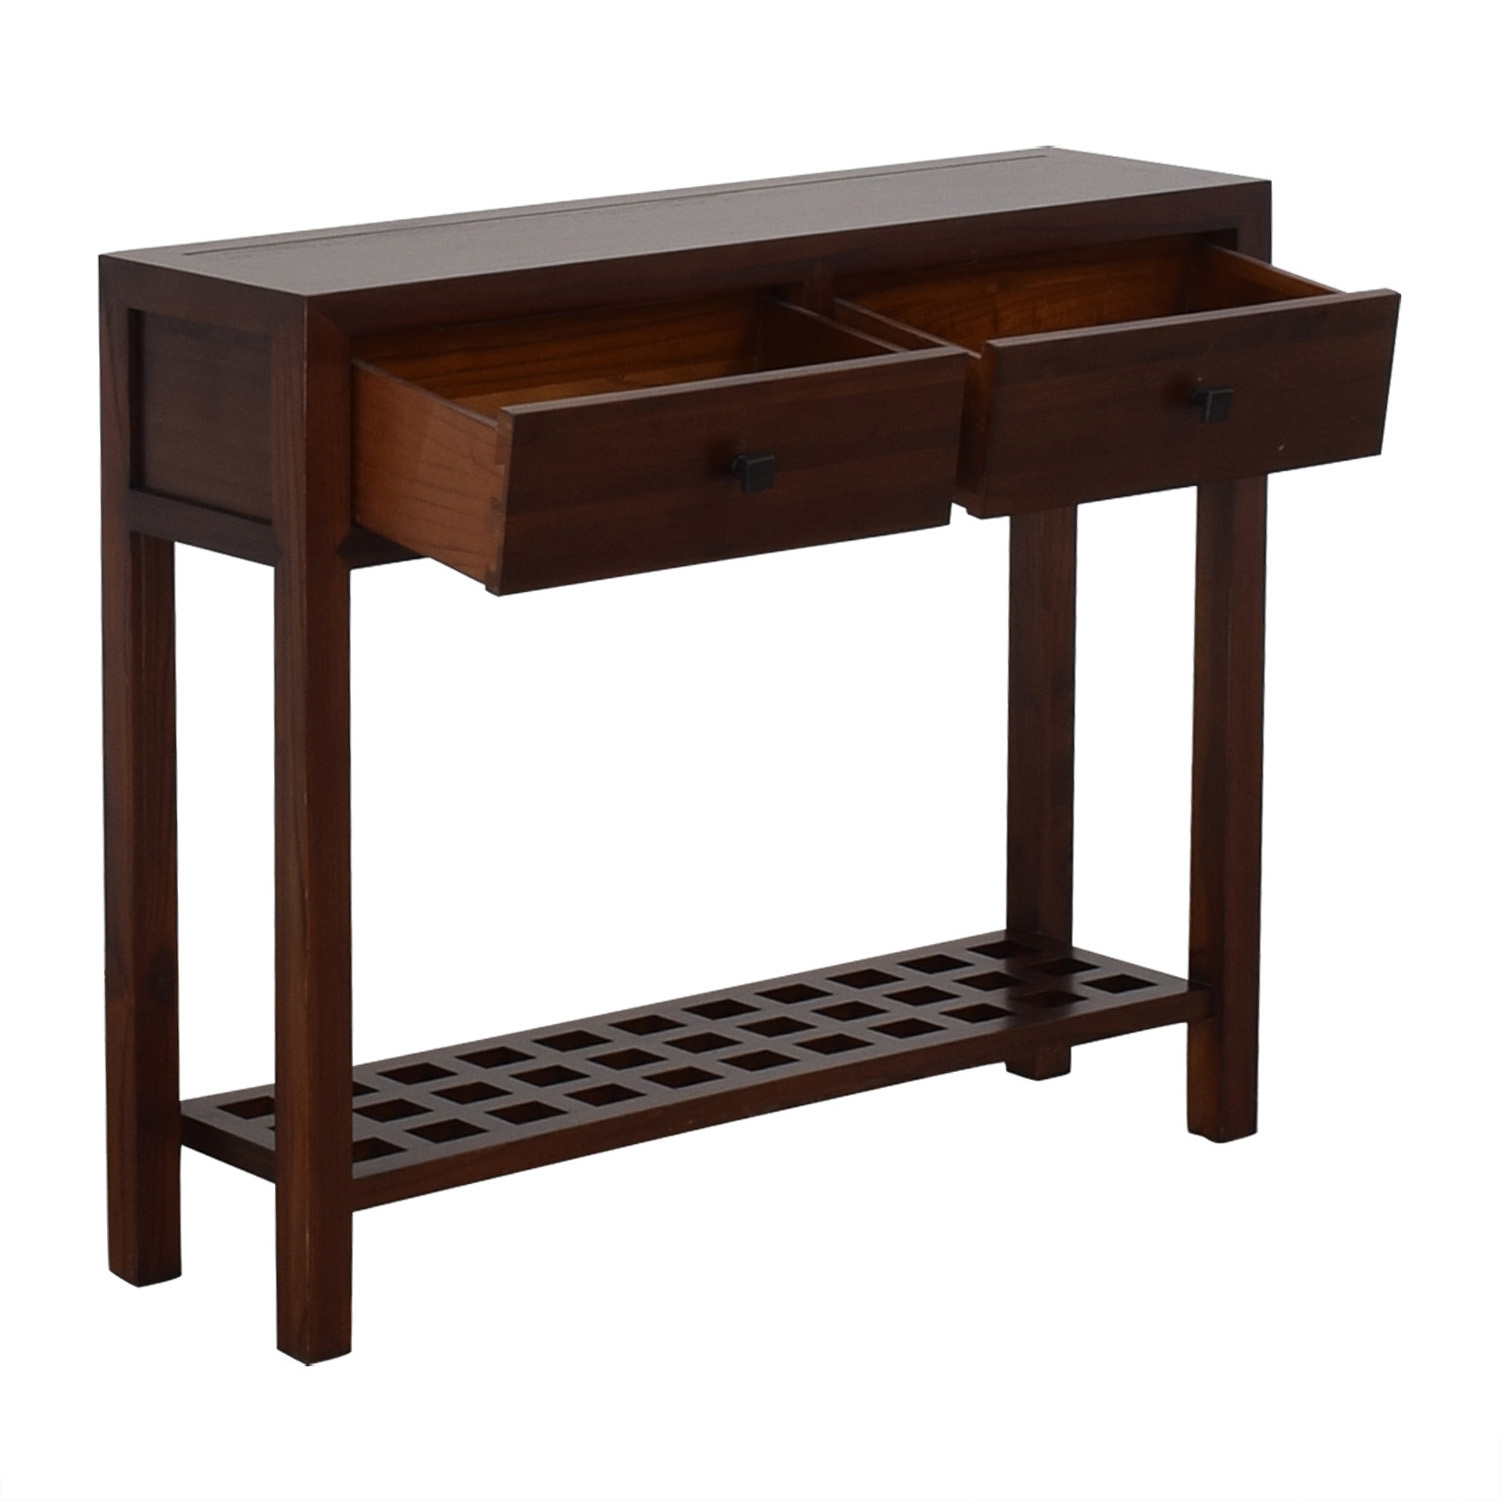 buy Room & Board by Maria Yee Console Table Room & Board Tables